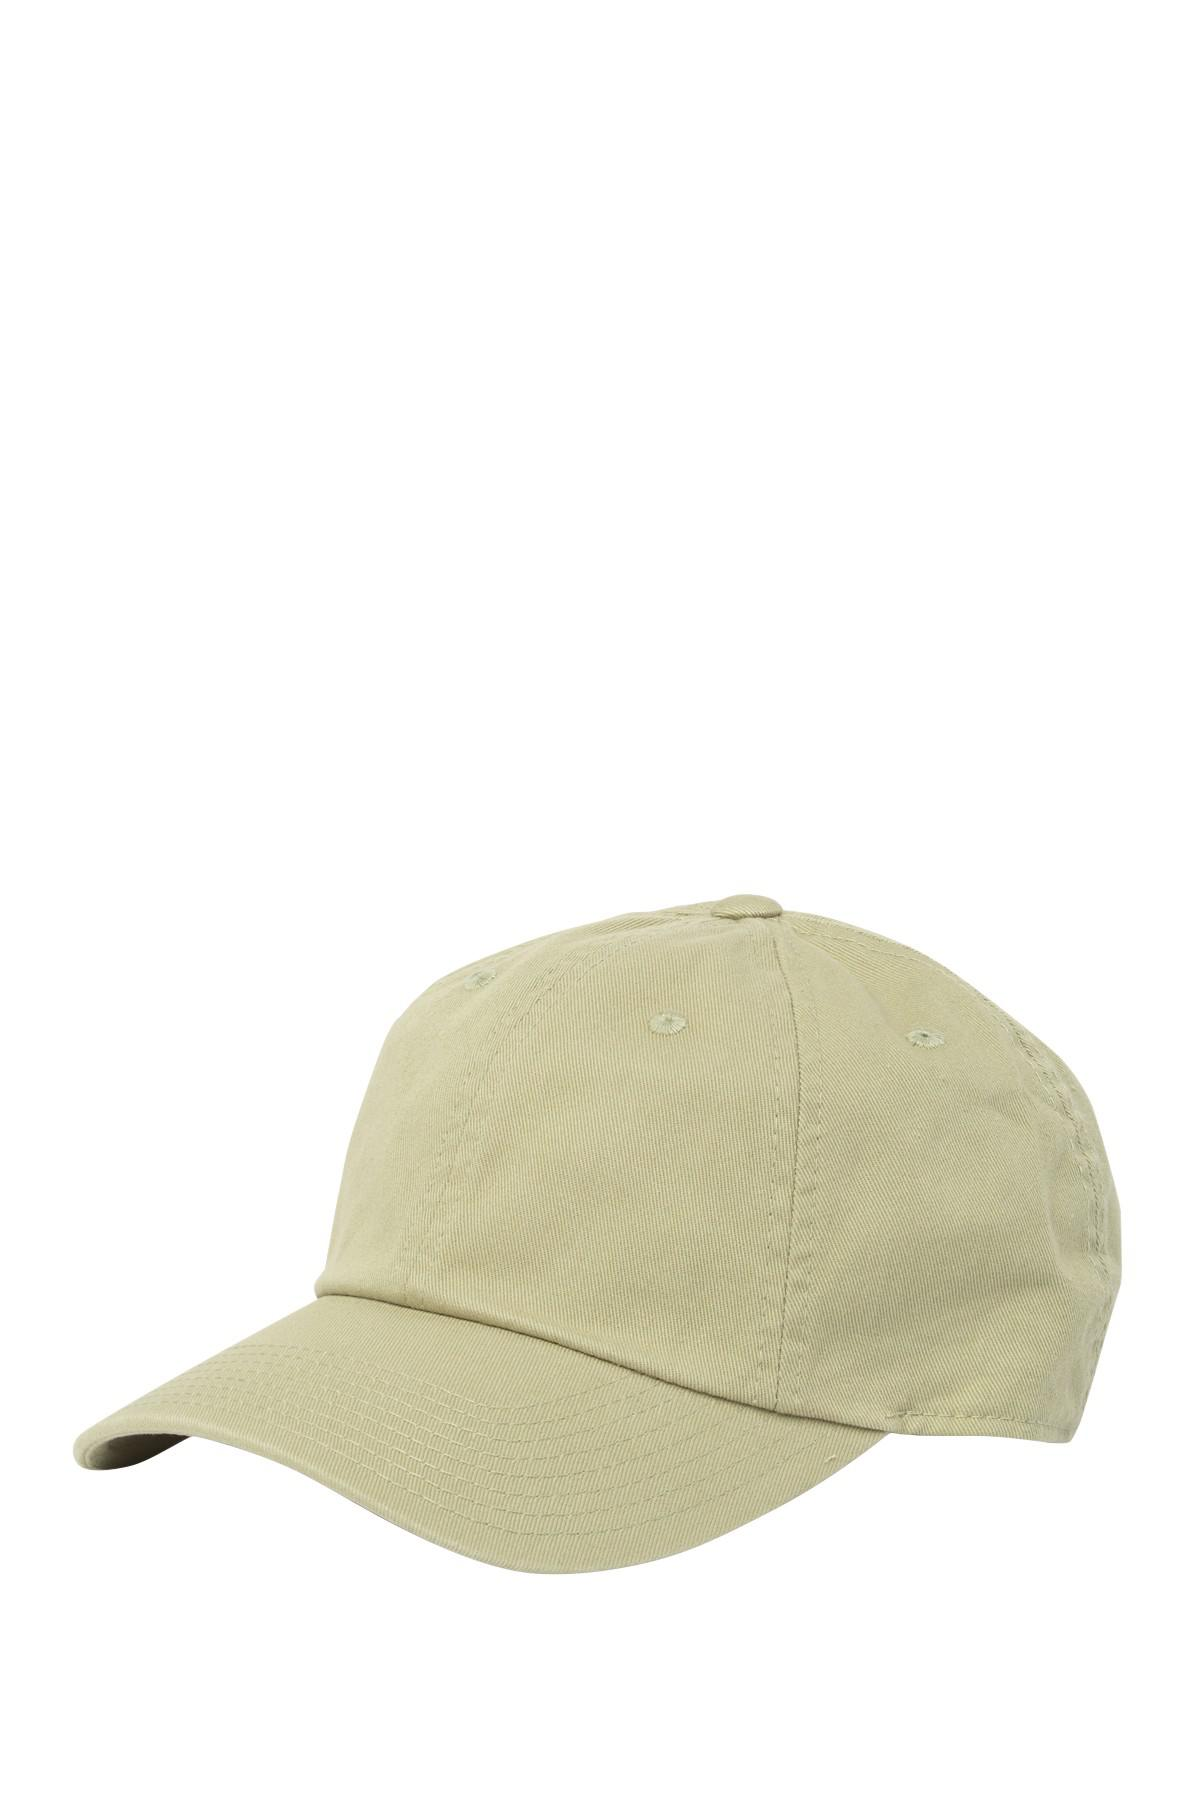 c1284793ede3d Lyst - American Needle Washed Slouch Baseball Cap in Green for Men